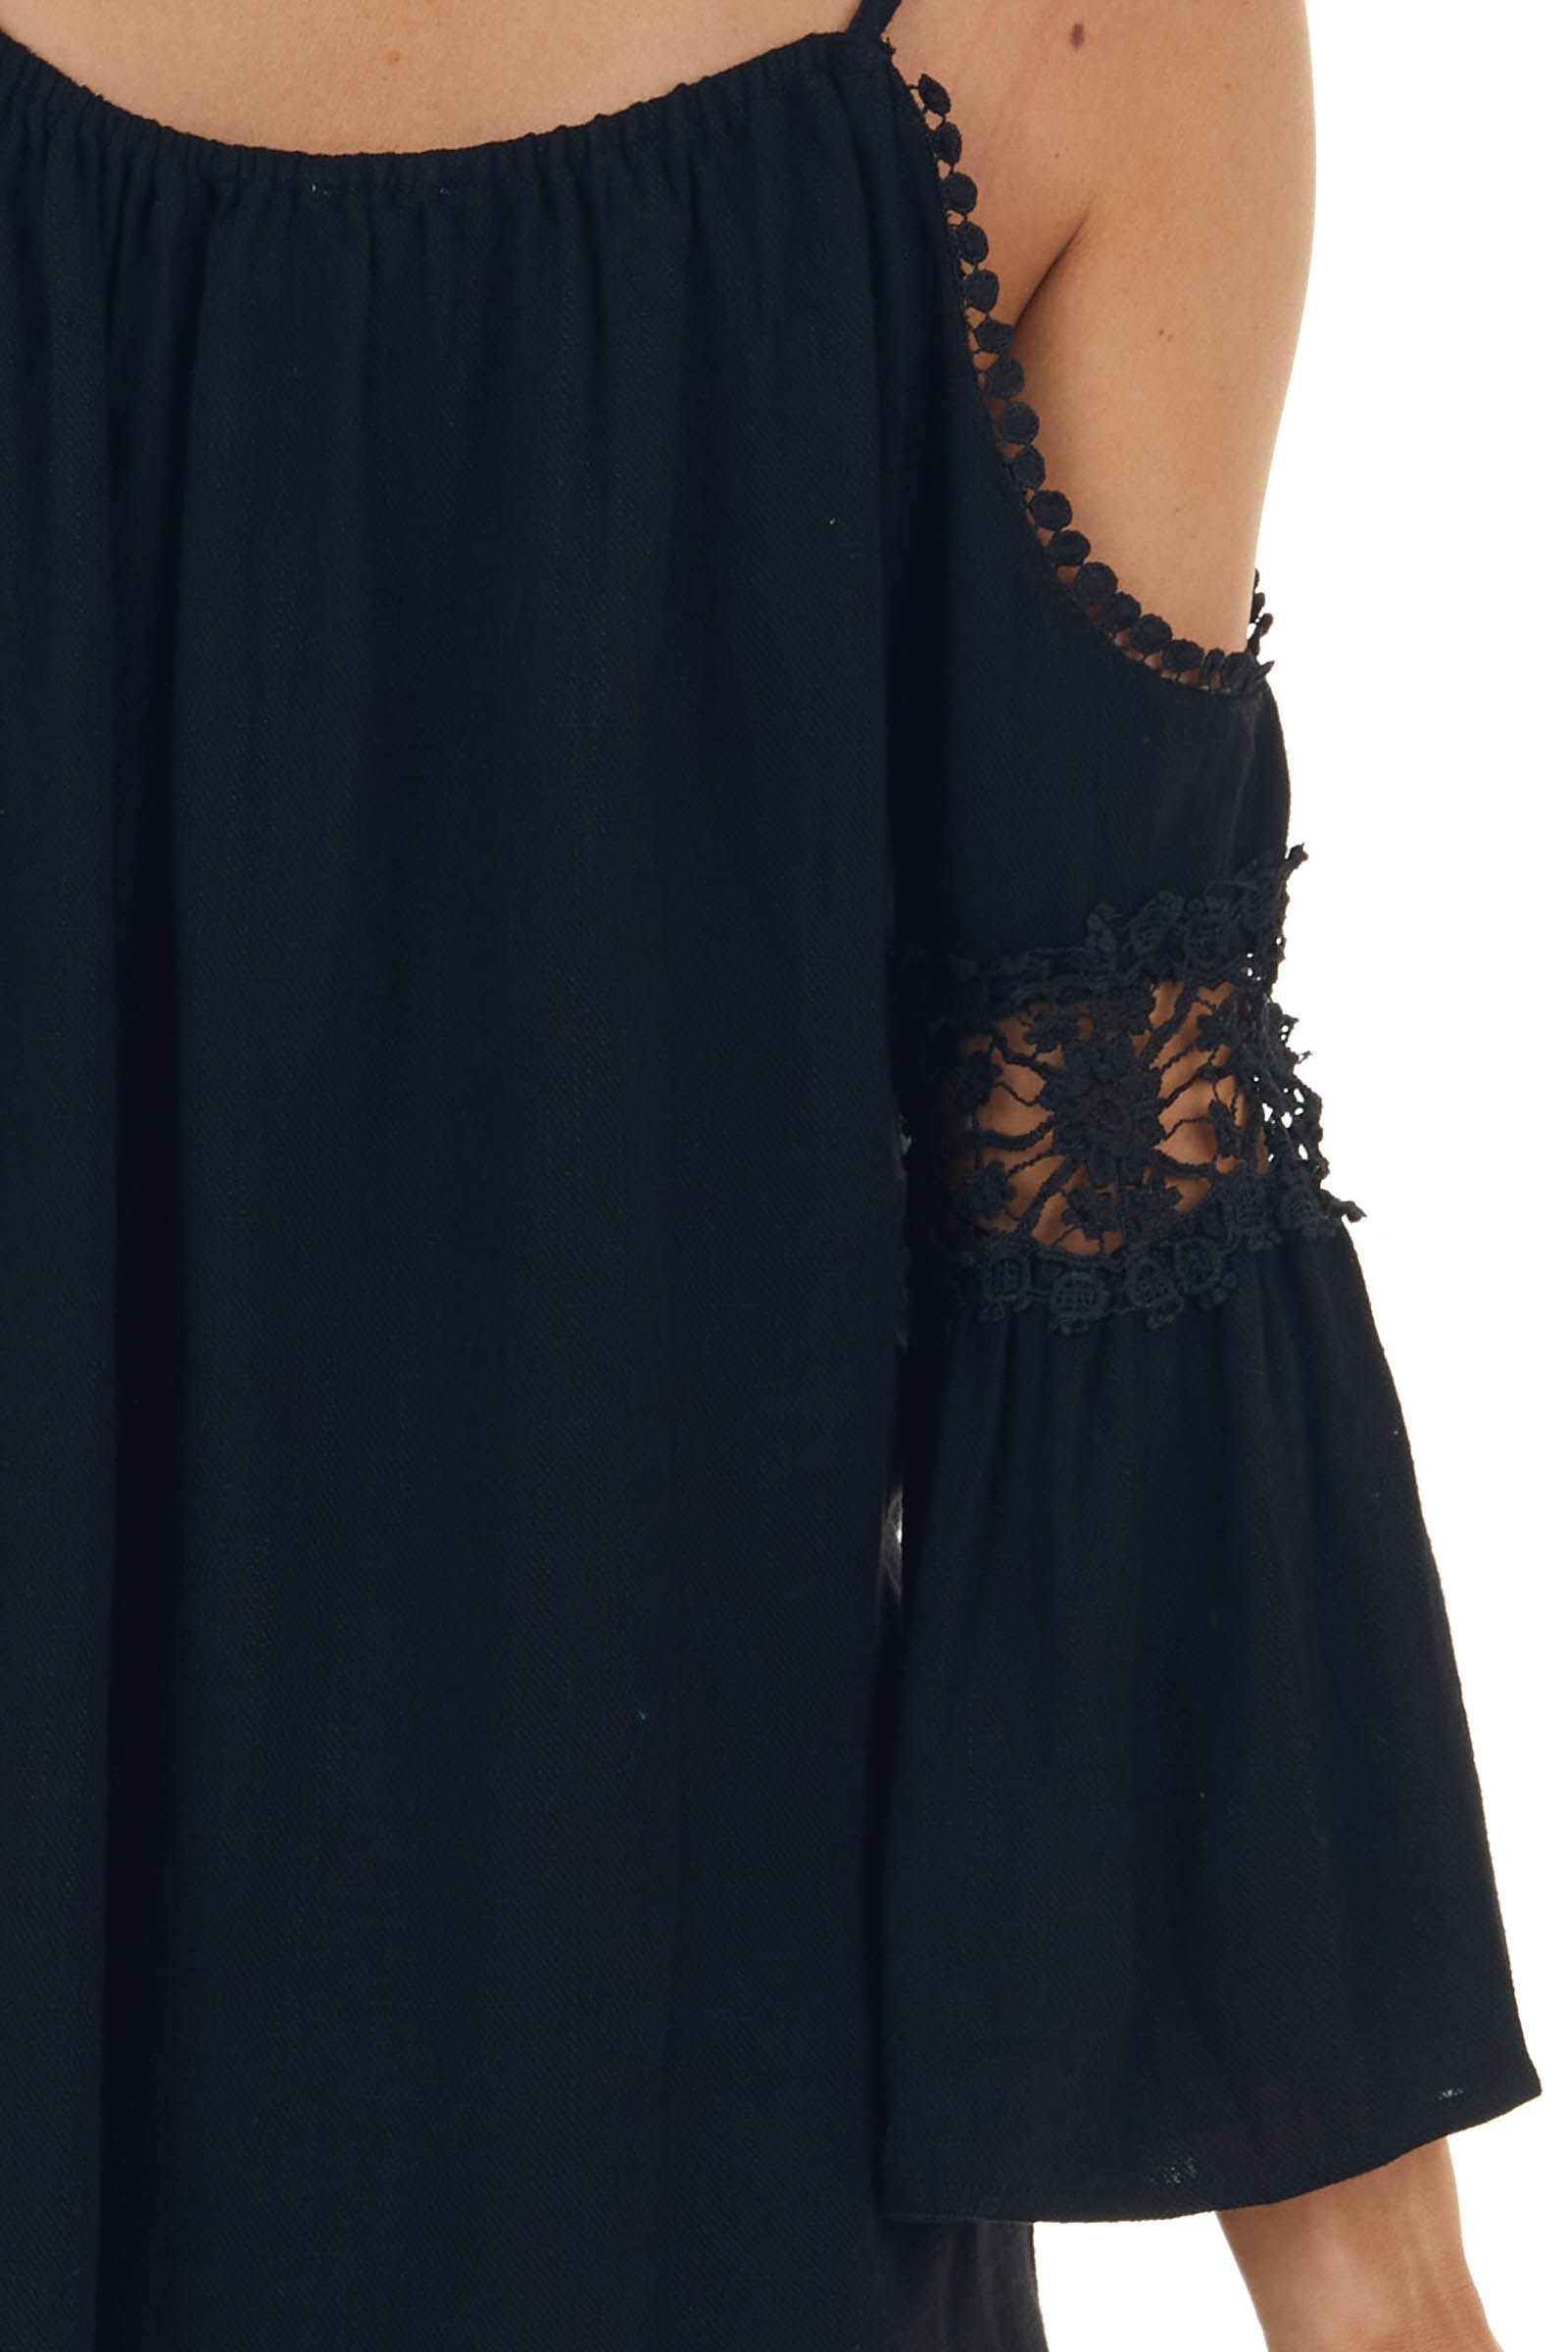 Black Cold Shoulder Top with Lace Cut Out